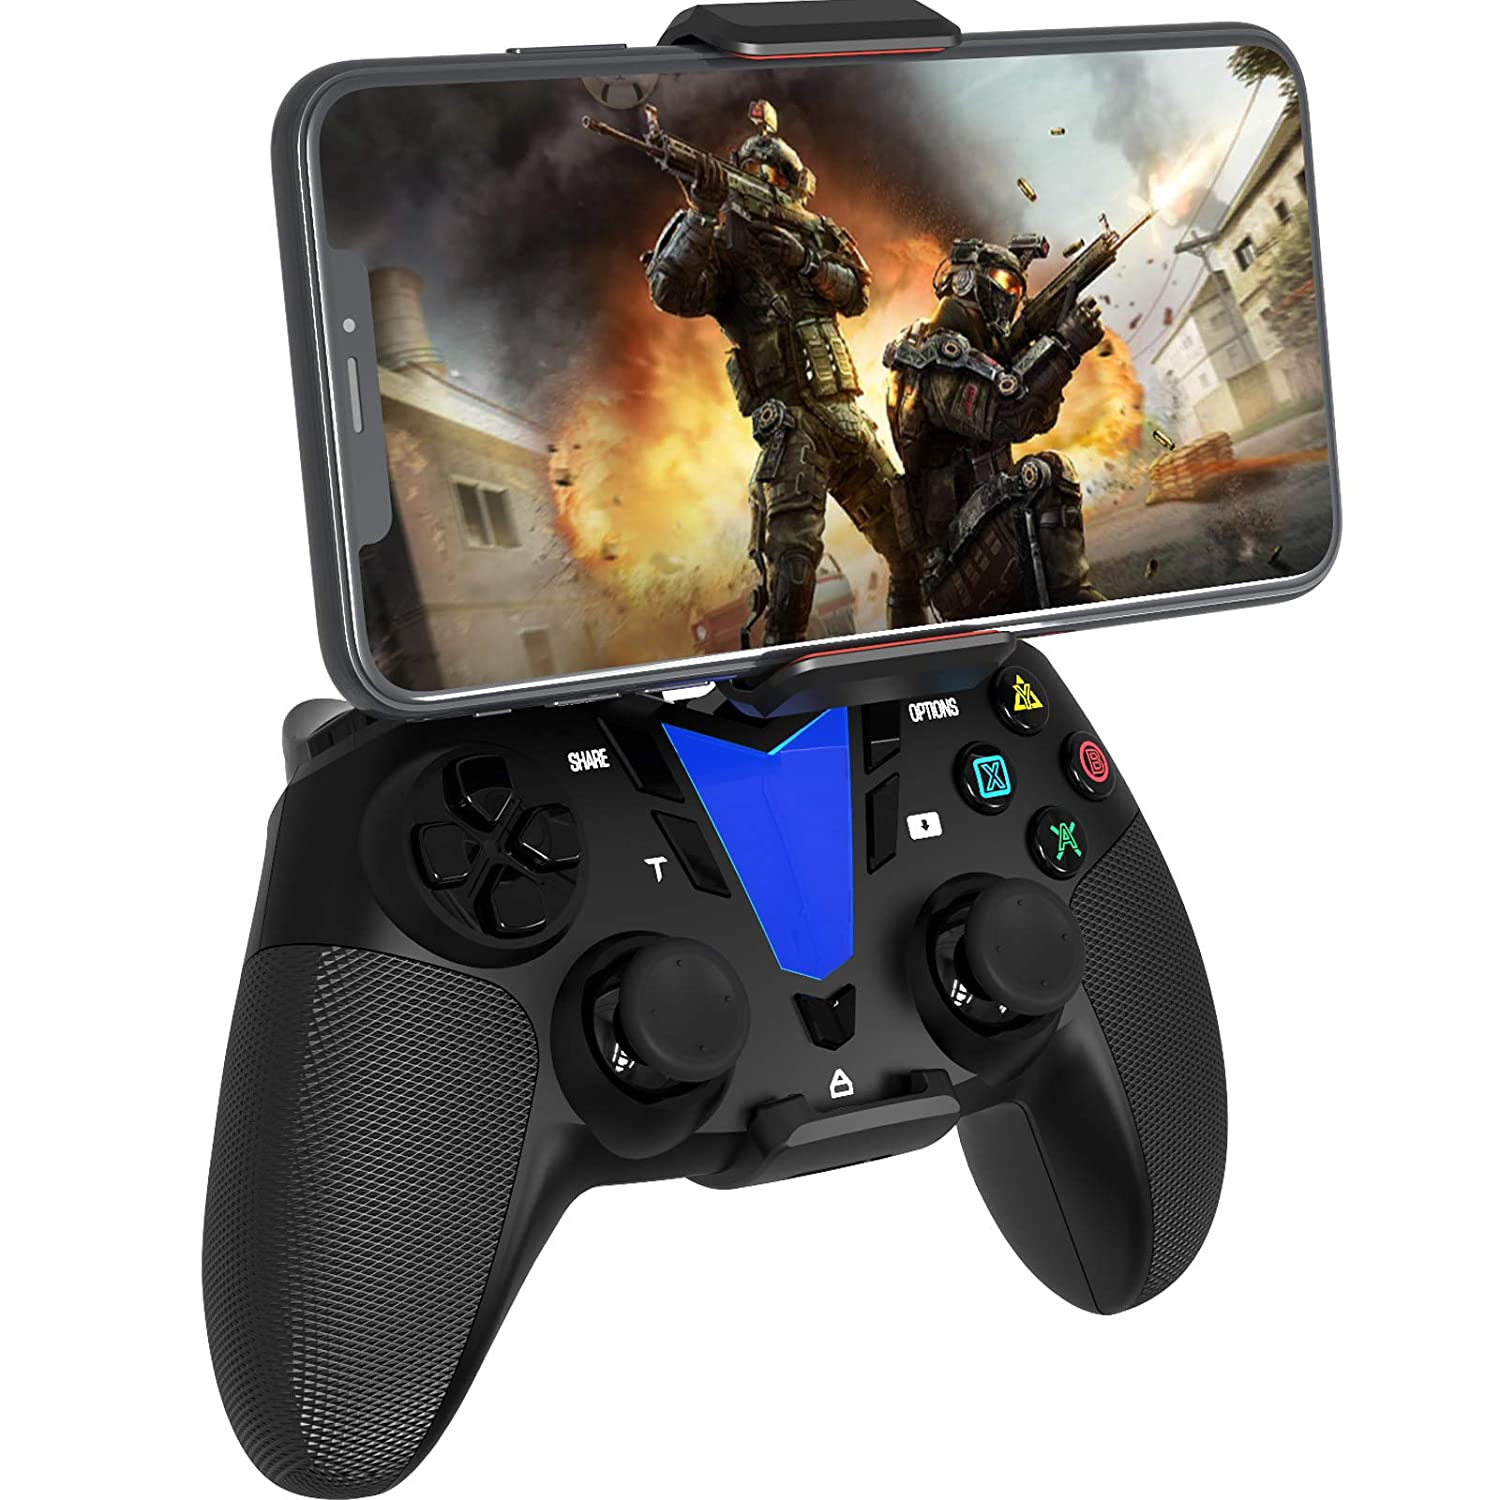 Wireless Bluetooth Mobile Game Controller for iOS 13 and Above / Android OS 10 and Above / Mac OS / tv OS / PC Windows 7, 8, 10, Steam / PS4 with Phone Clip